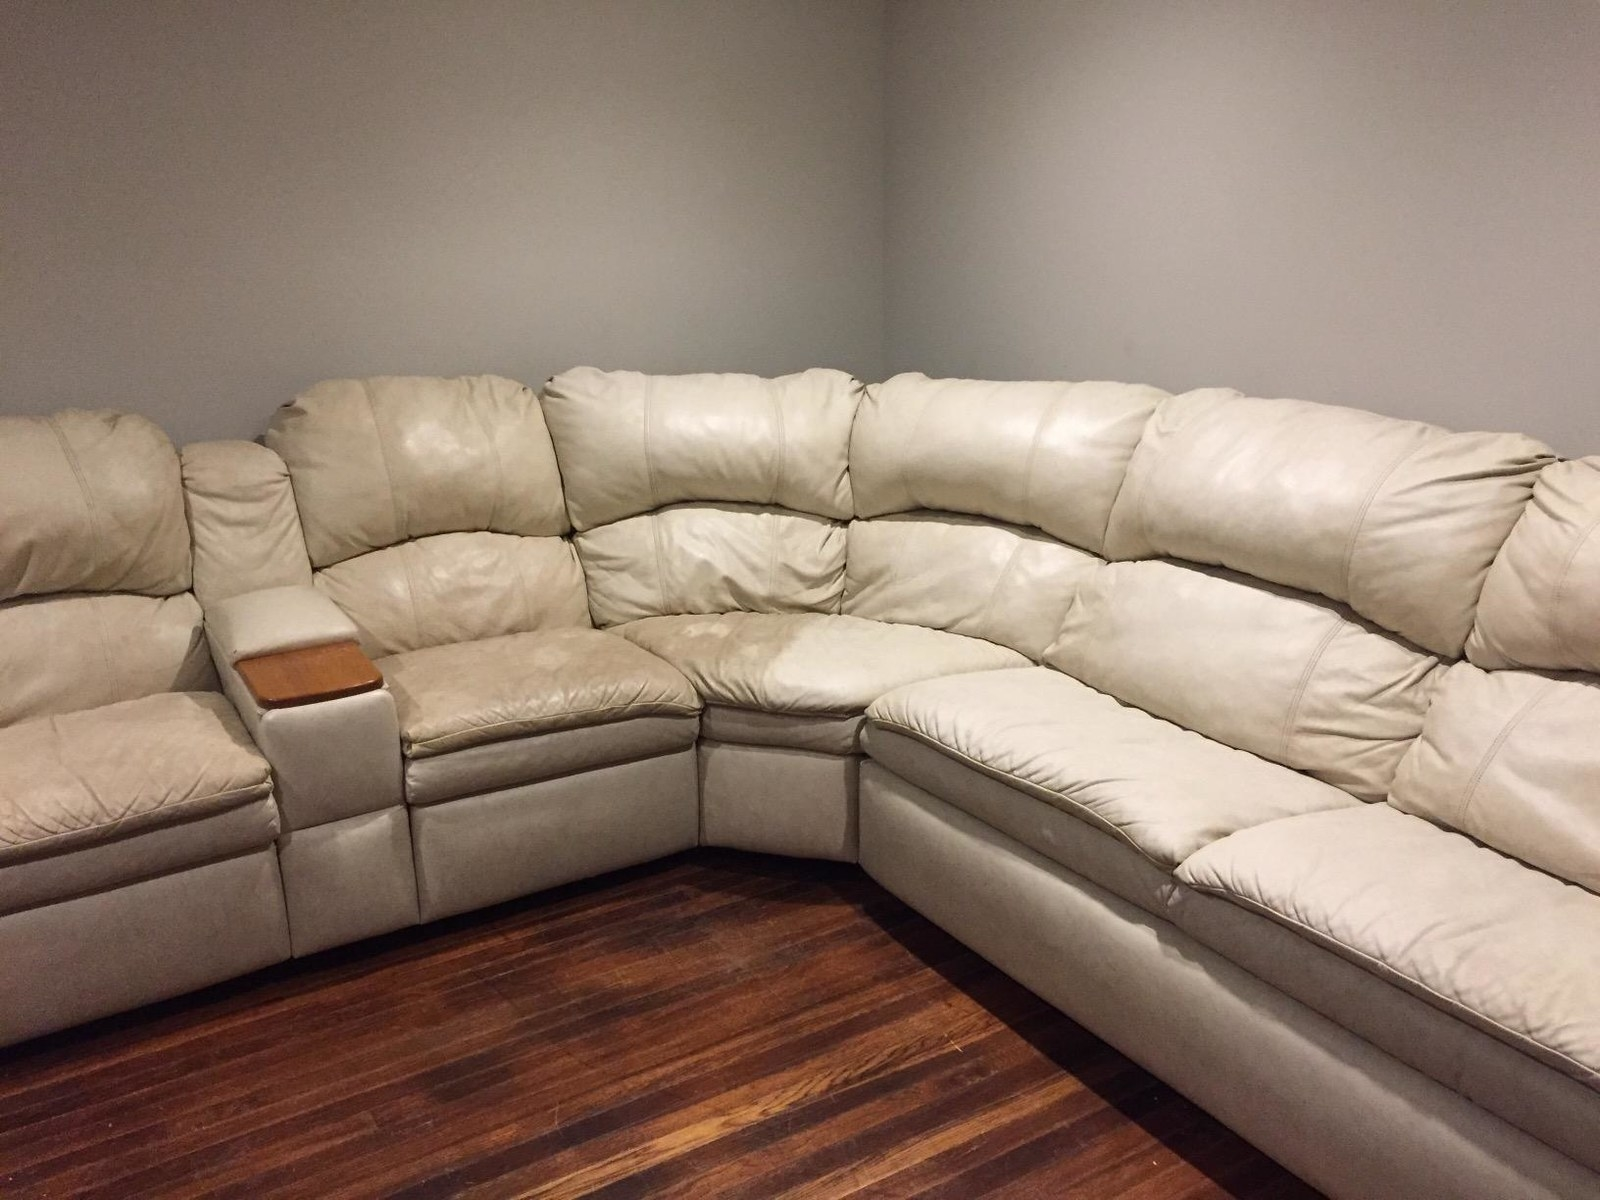 white couch half cleaned looking tan on one side and bright white on the other